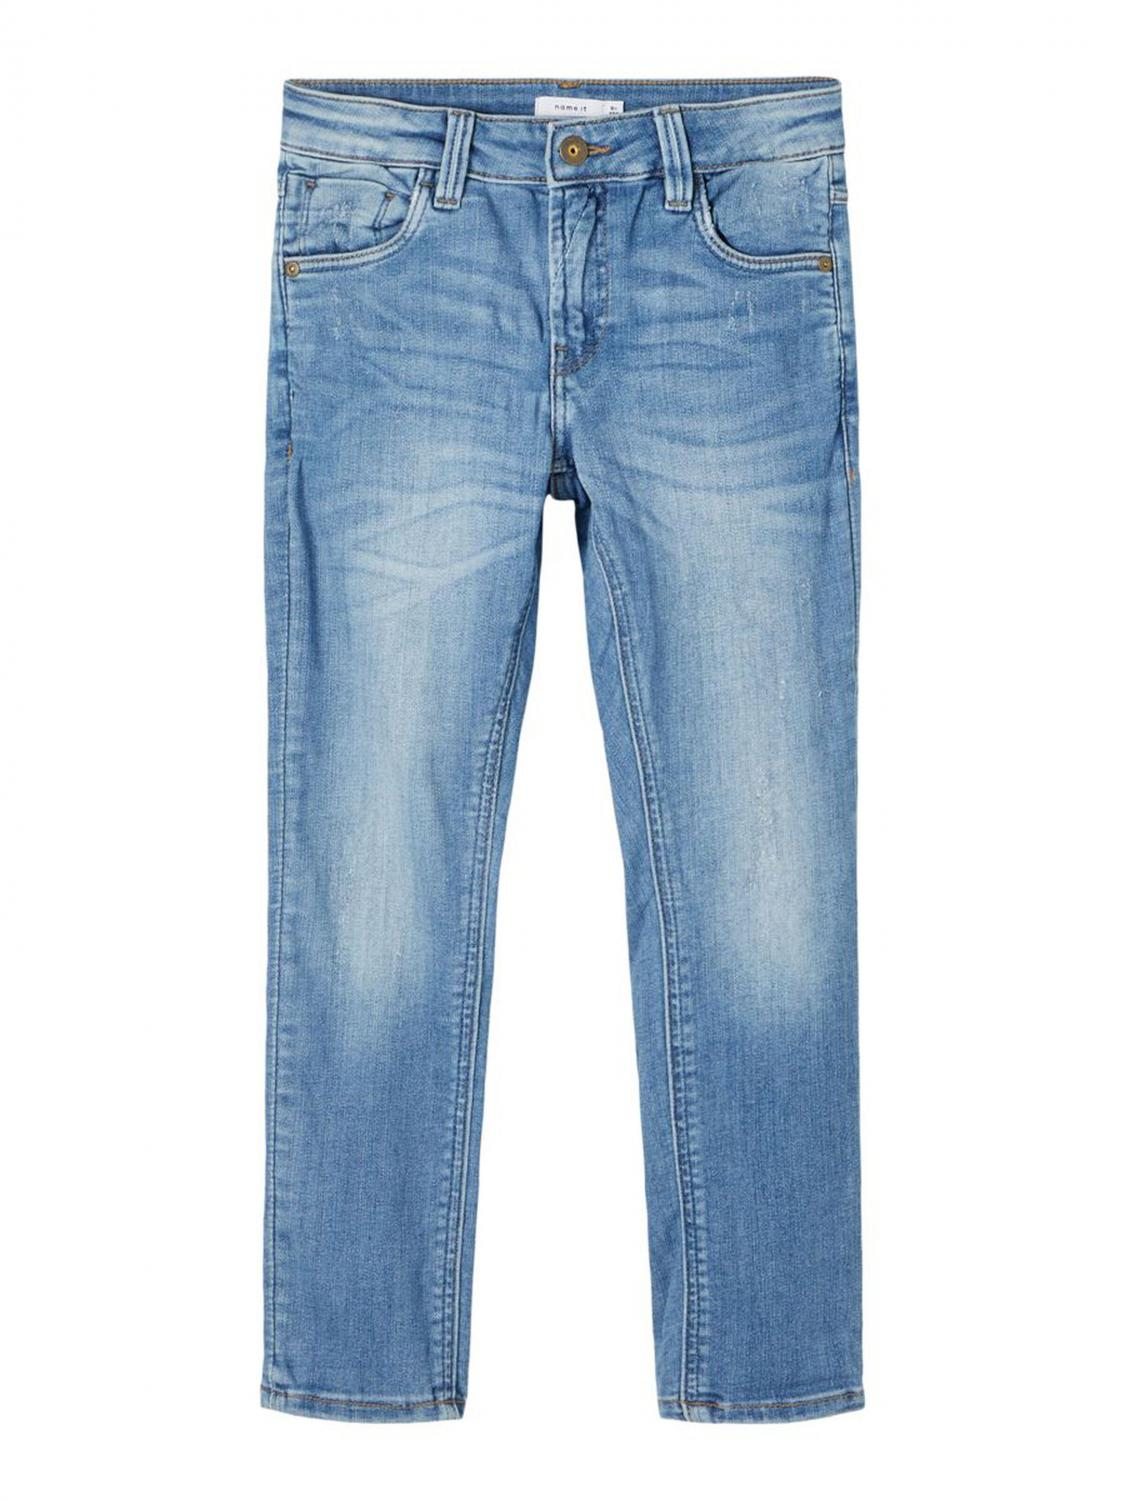 NAME IT BAGGY FIT JEANS